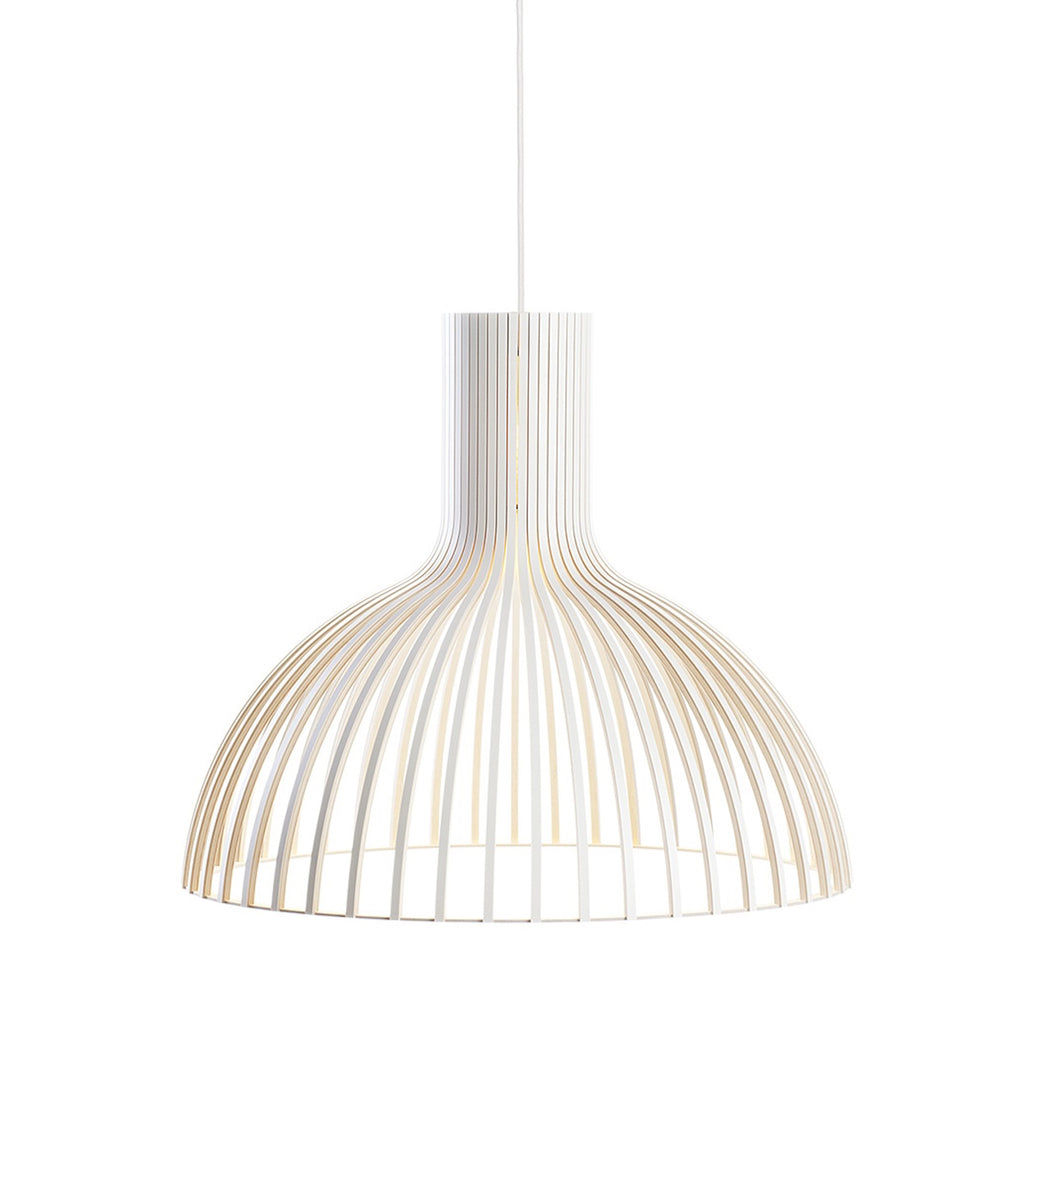 Victo 4250 White wooden pendant Secto Design handmade contemporary lighting sustainable lights Seppo Koho